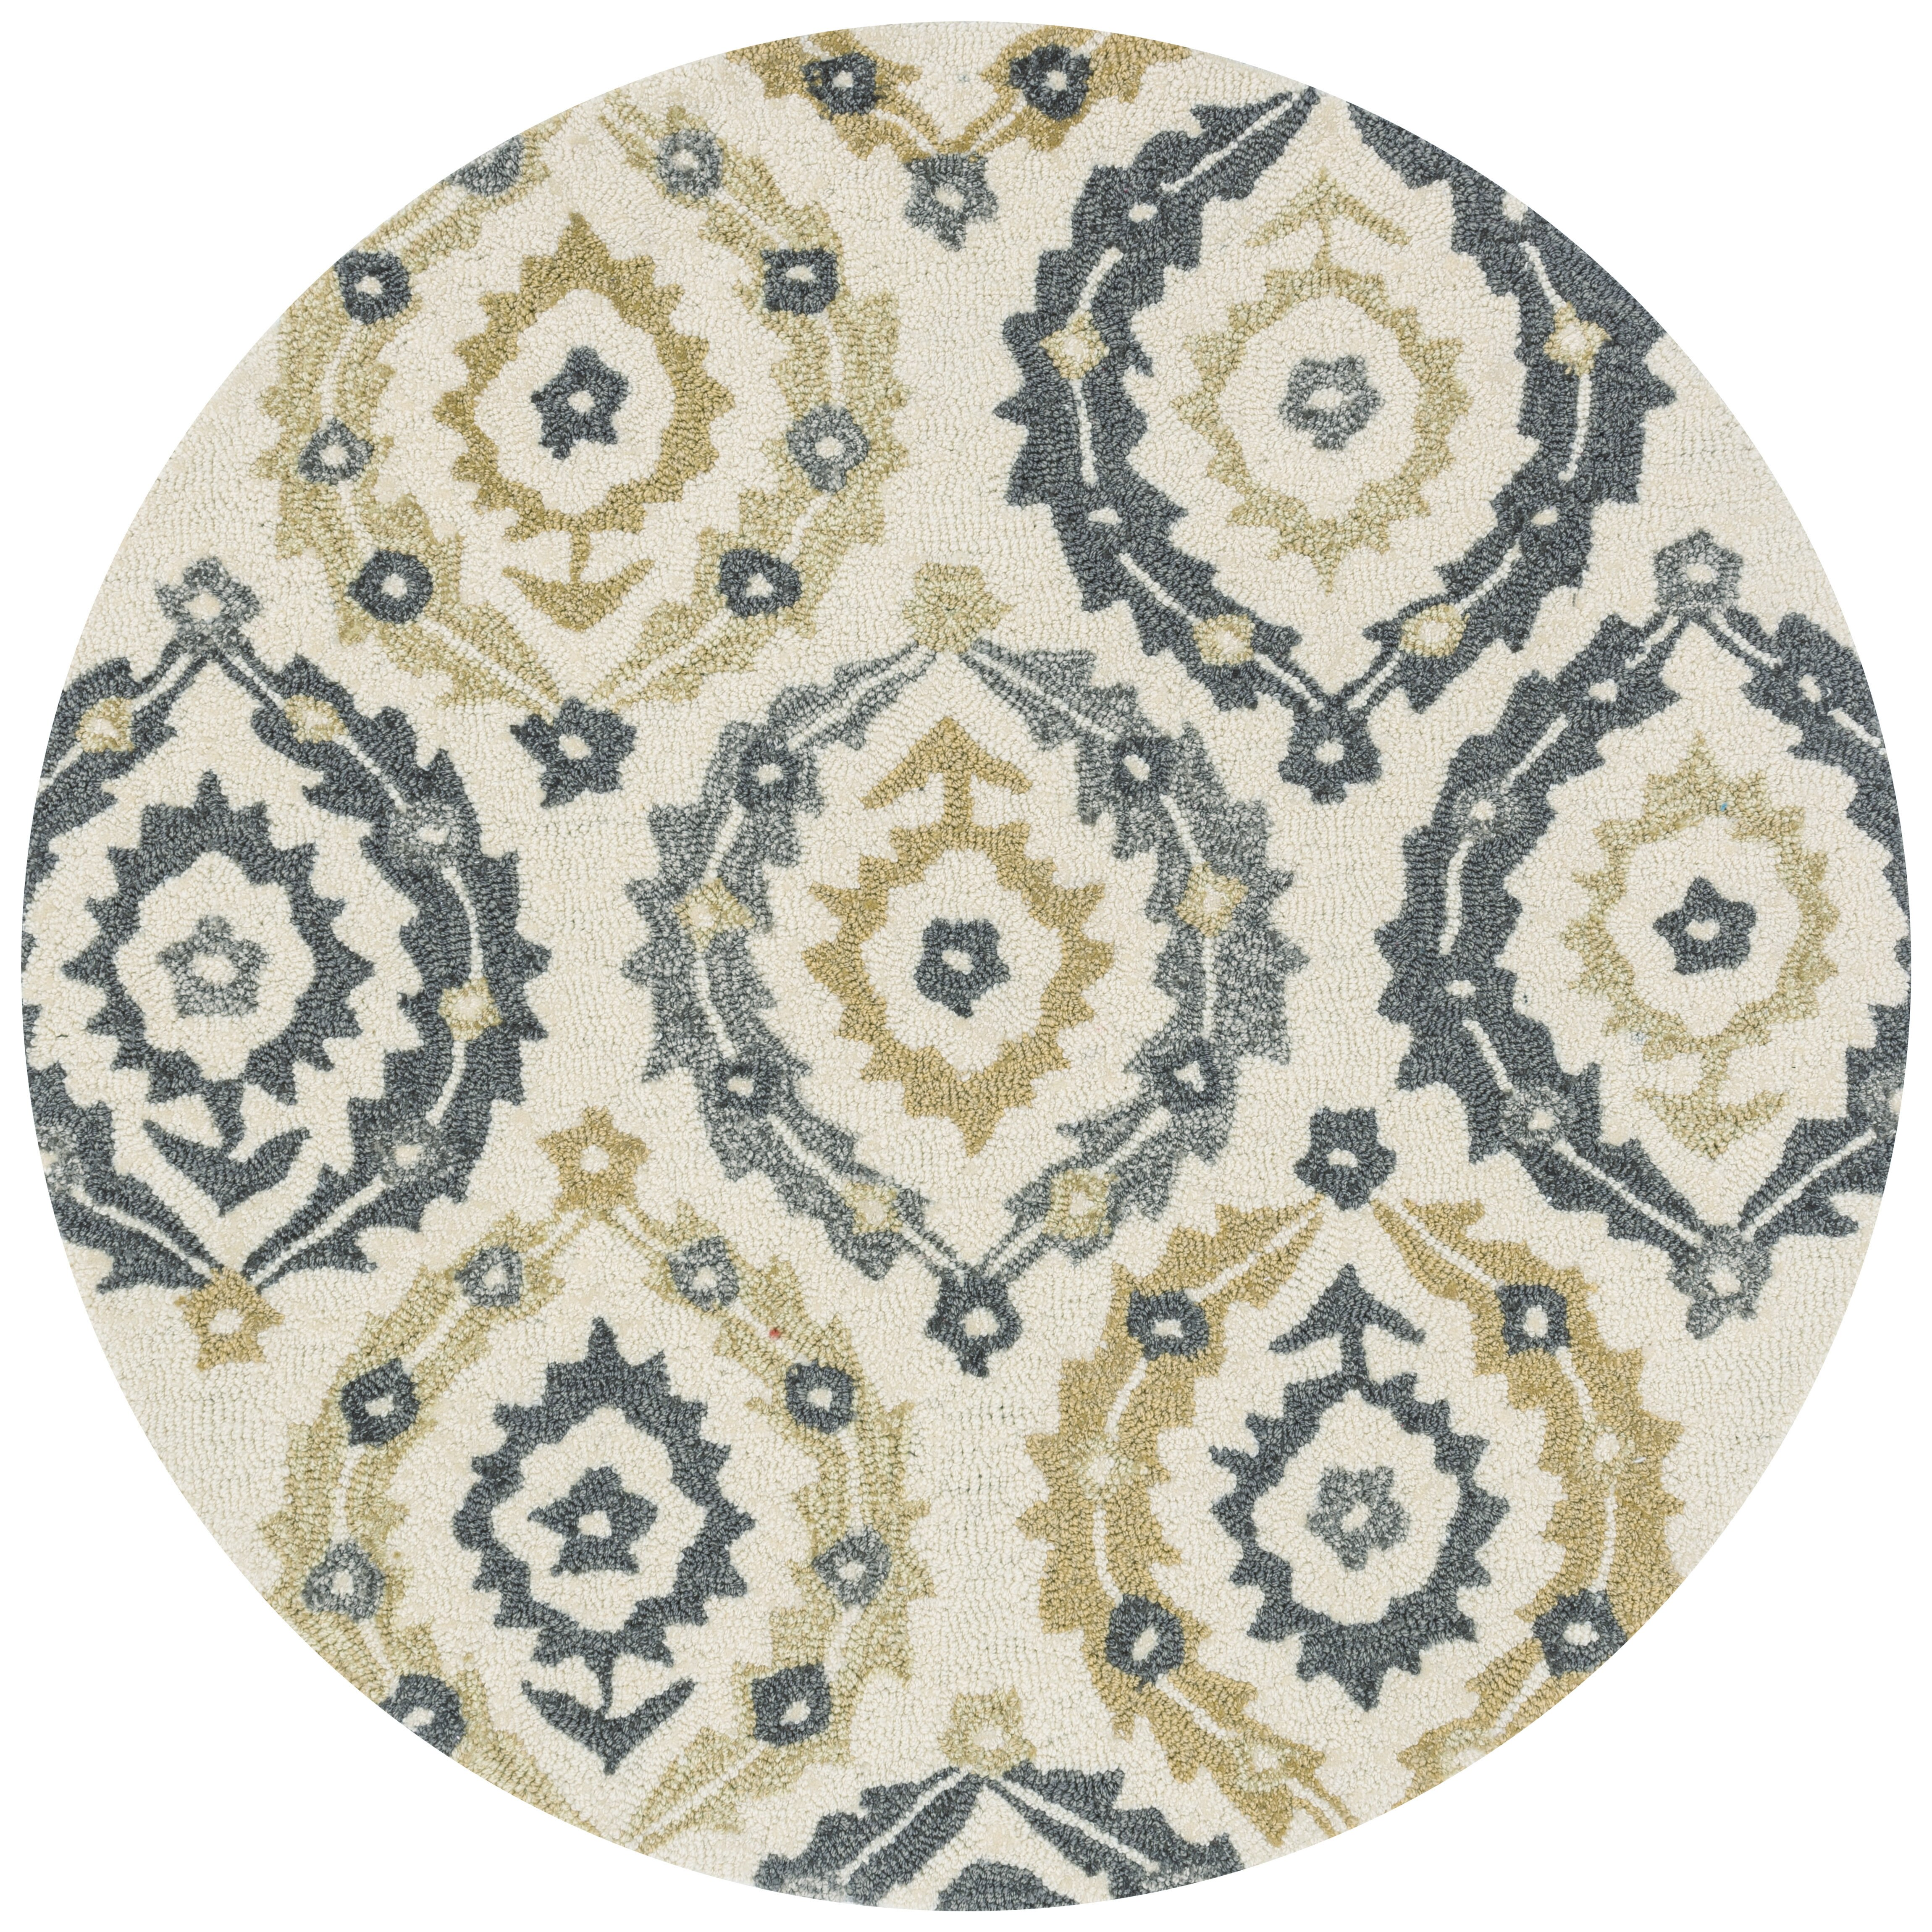 Loloi Rugs Francesca Ivory Amp Graphite Floral Area Rug